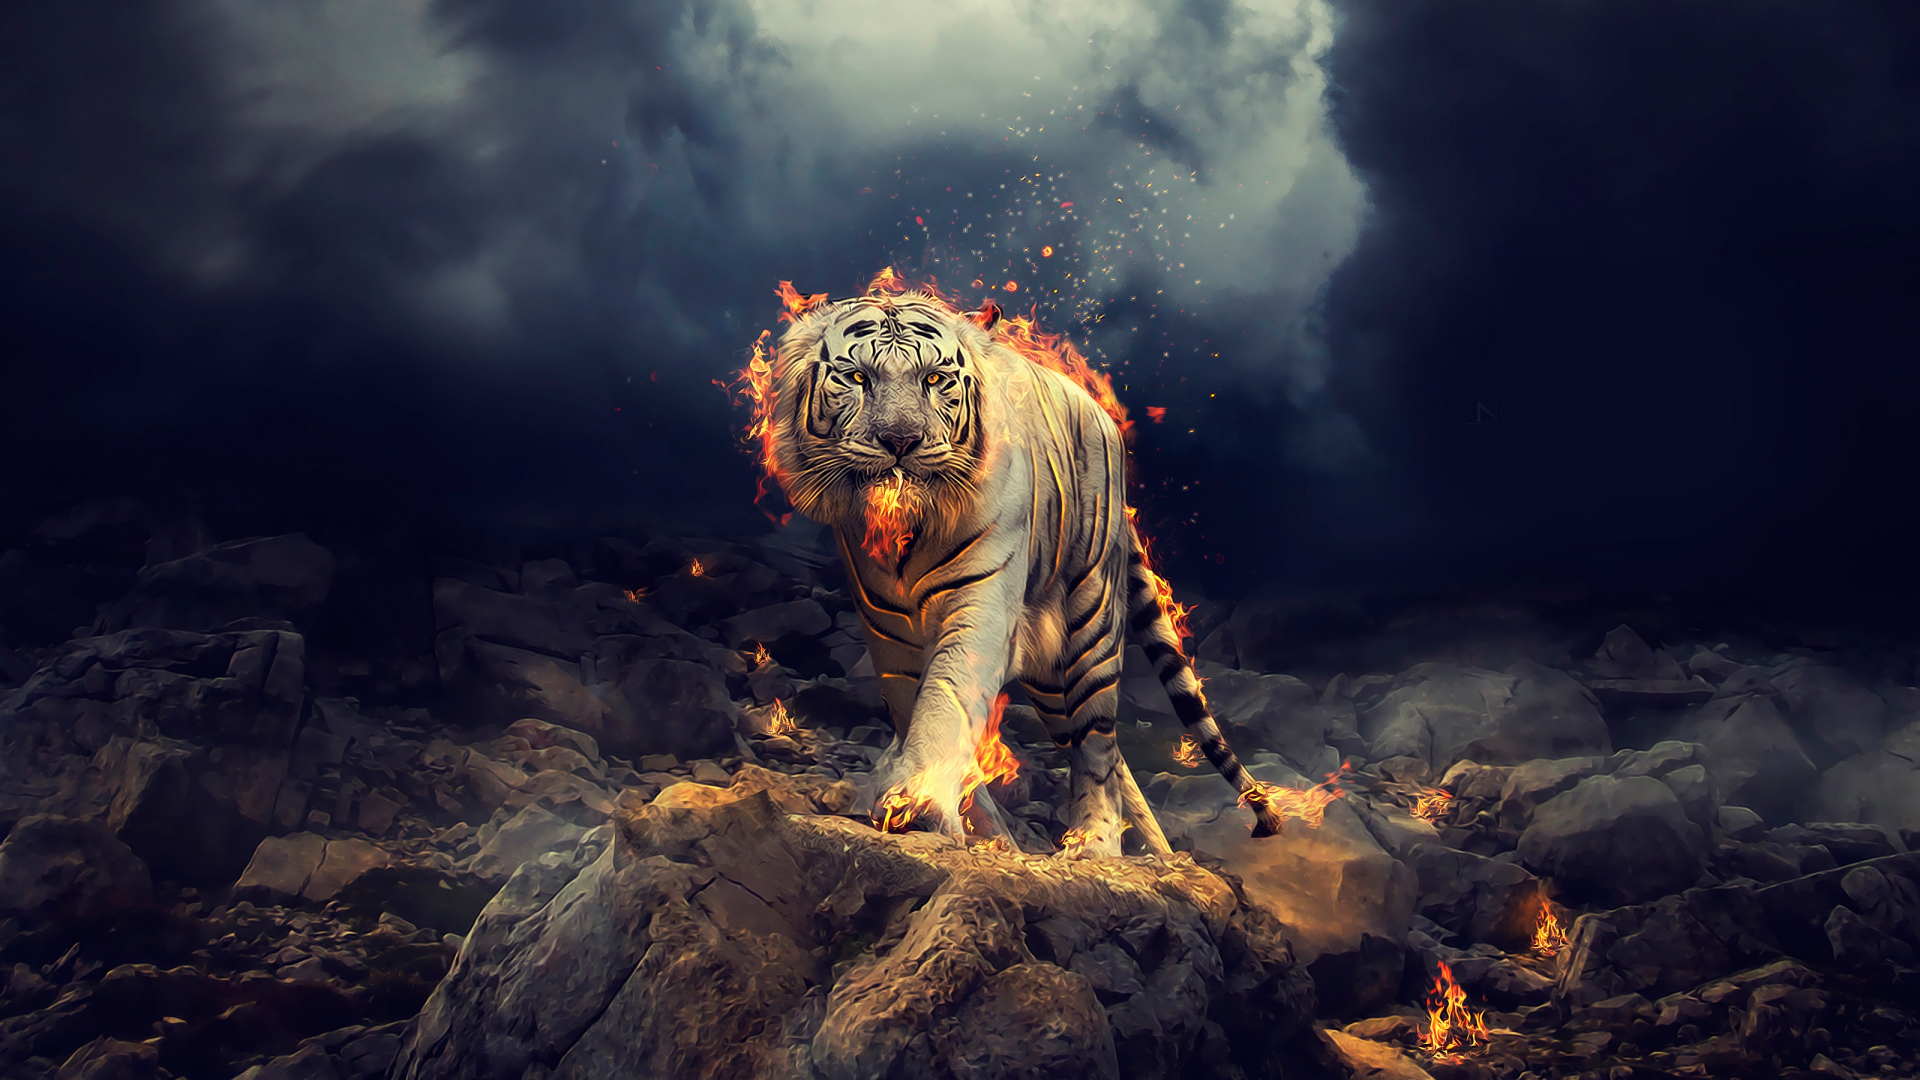 Download 1920x1080 Wallpaper Angry Raging White Tiger